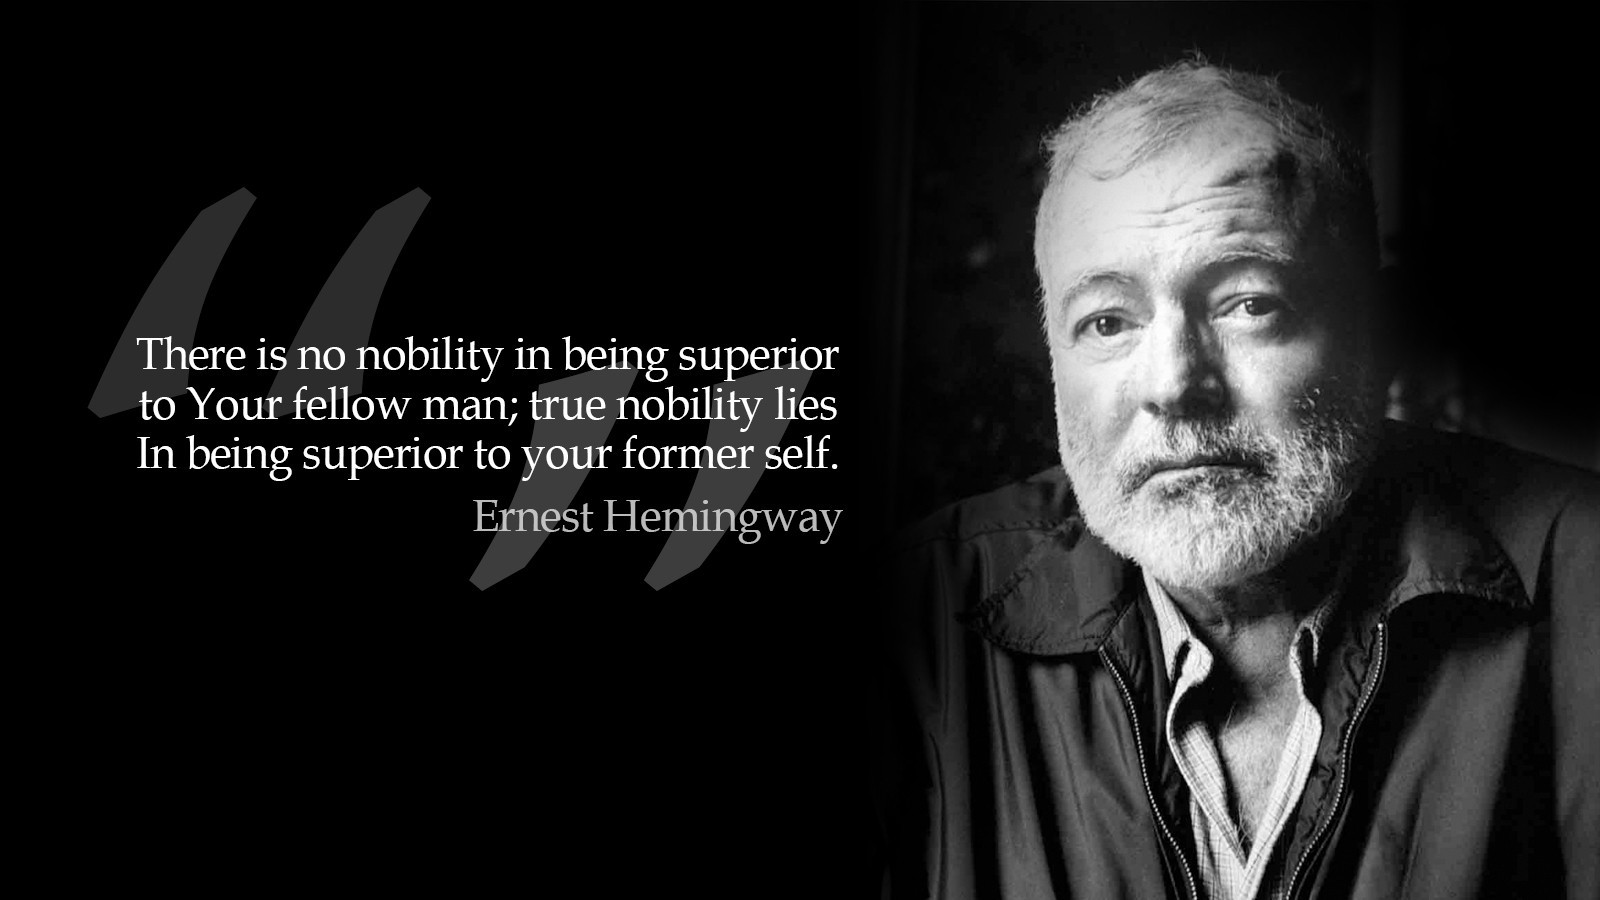 black and white quotes grayscale monochrome Ernest Hemingway wallpaper background